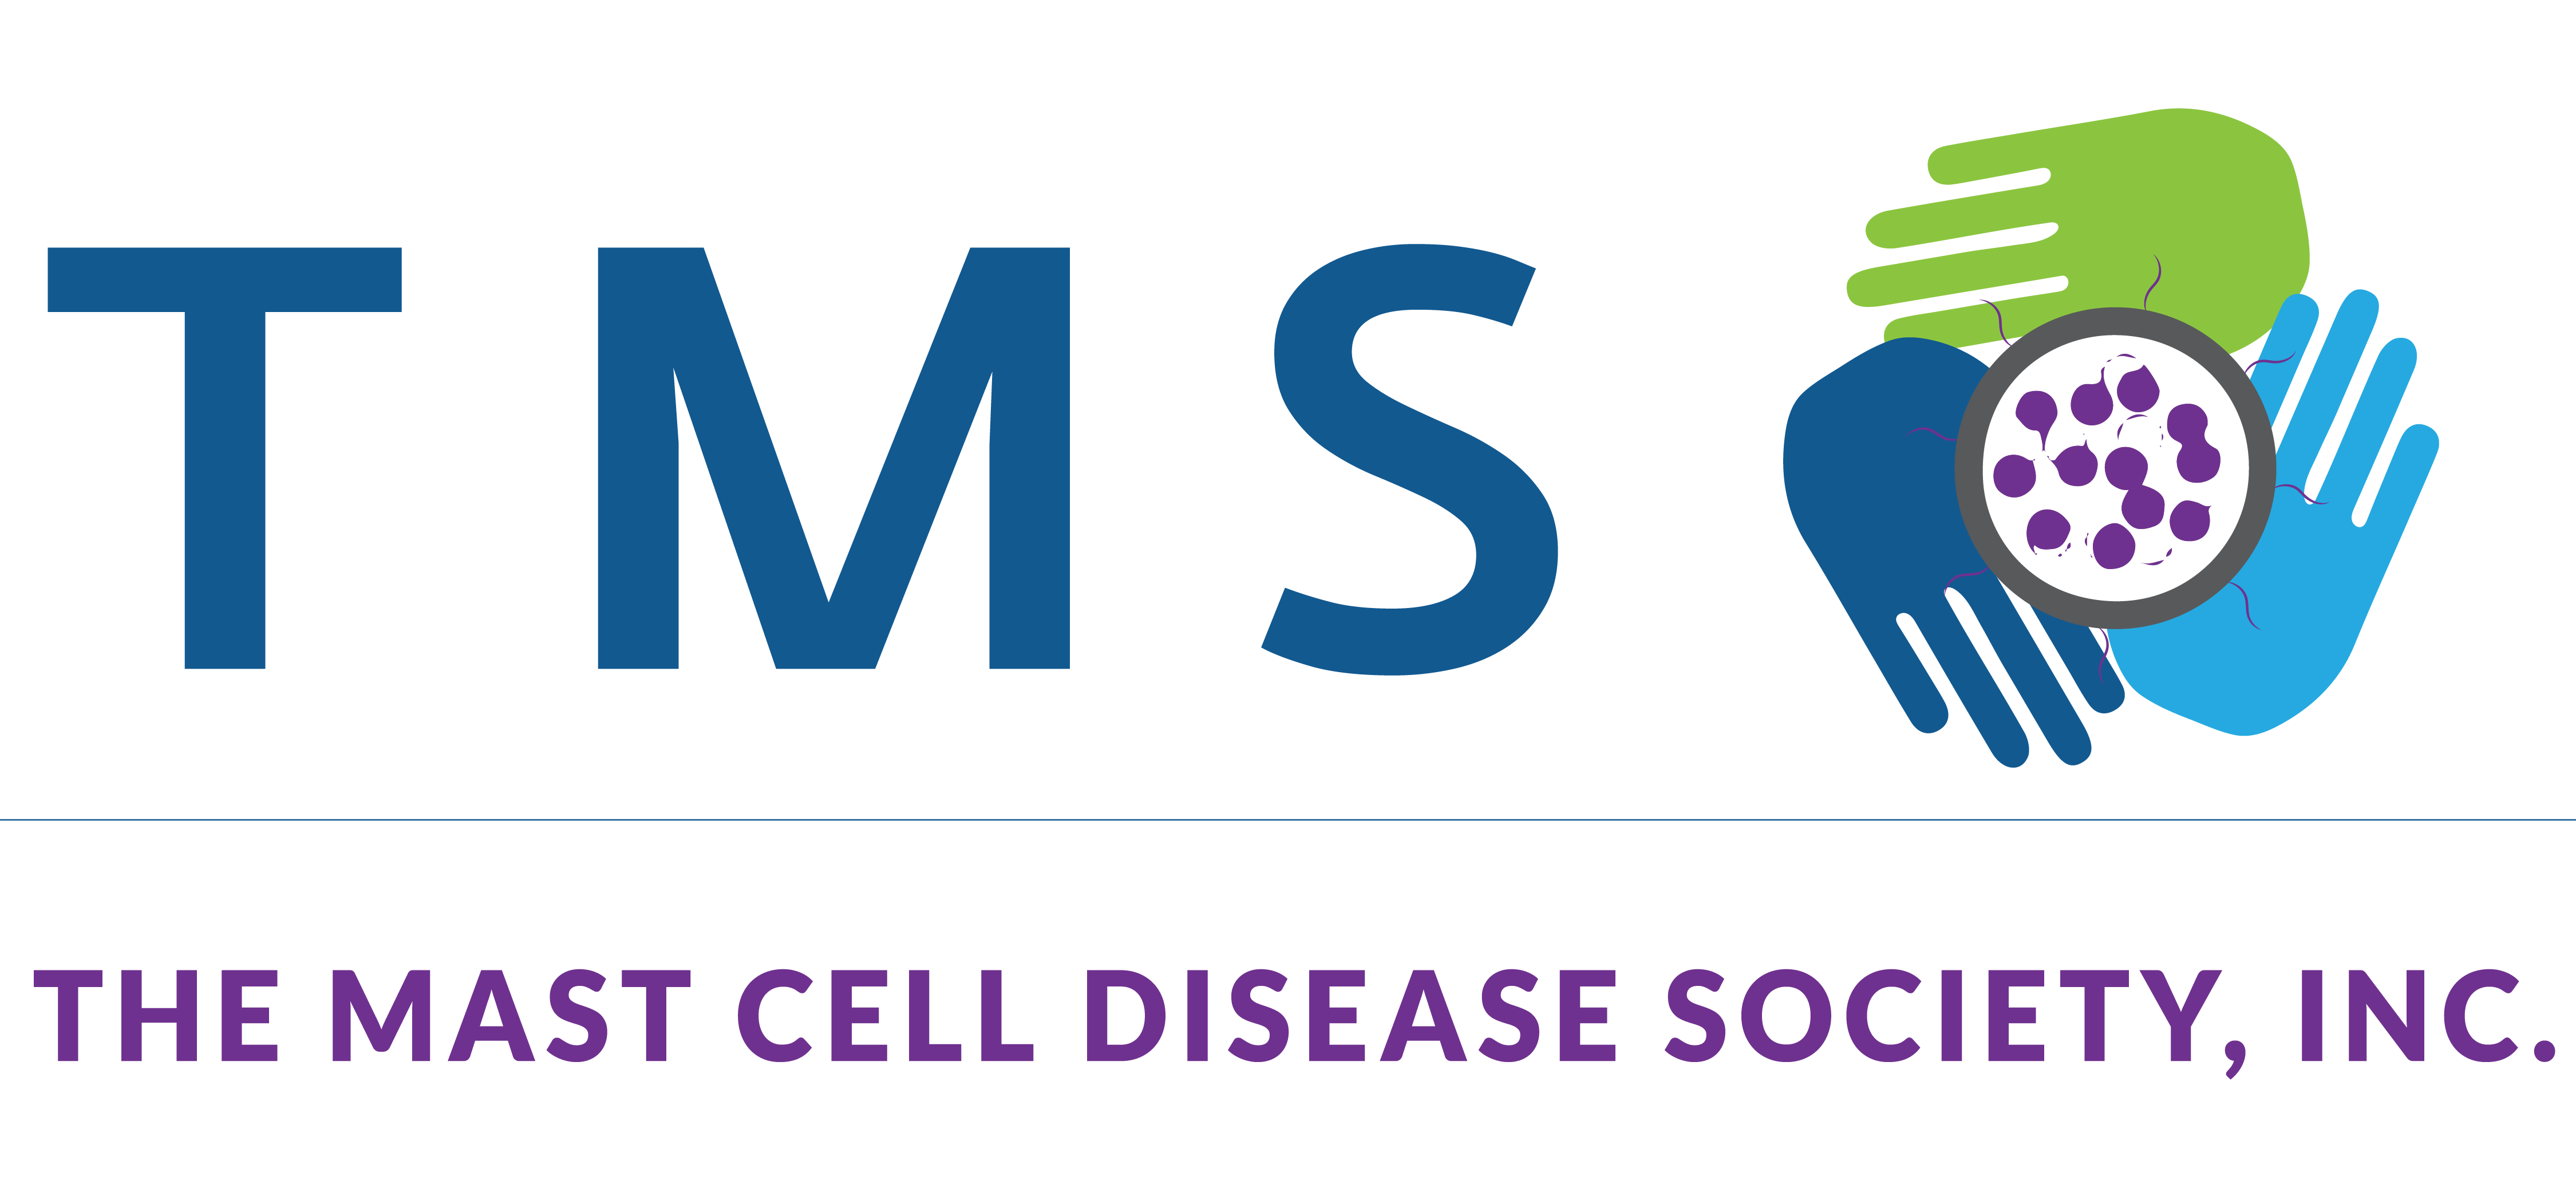 TMS – The Mast Cell Disease Society, INC